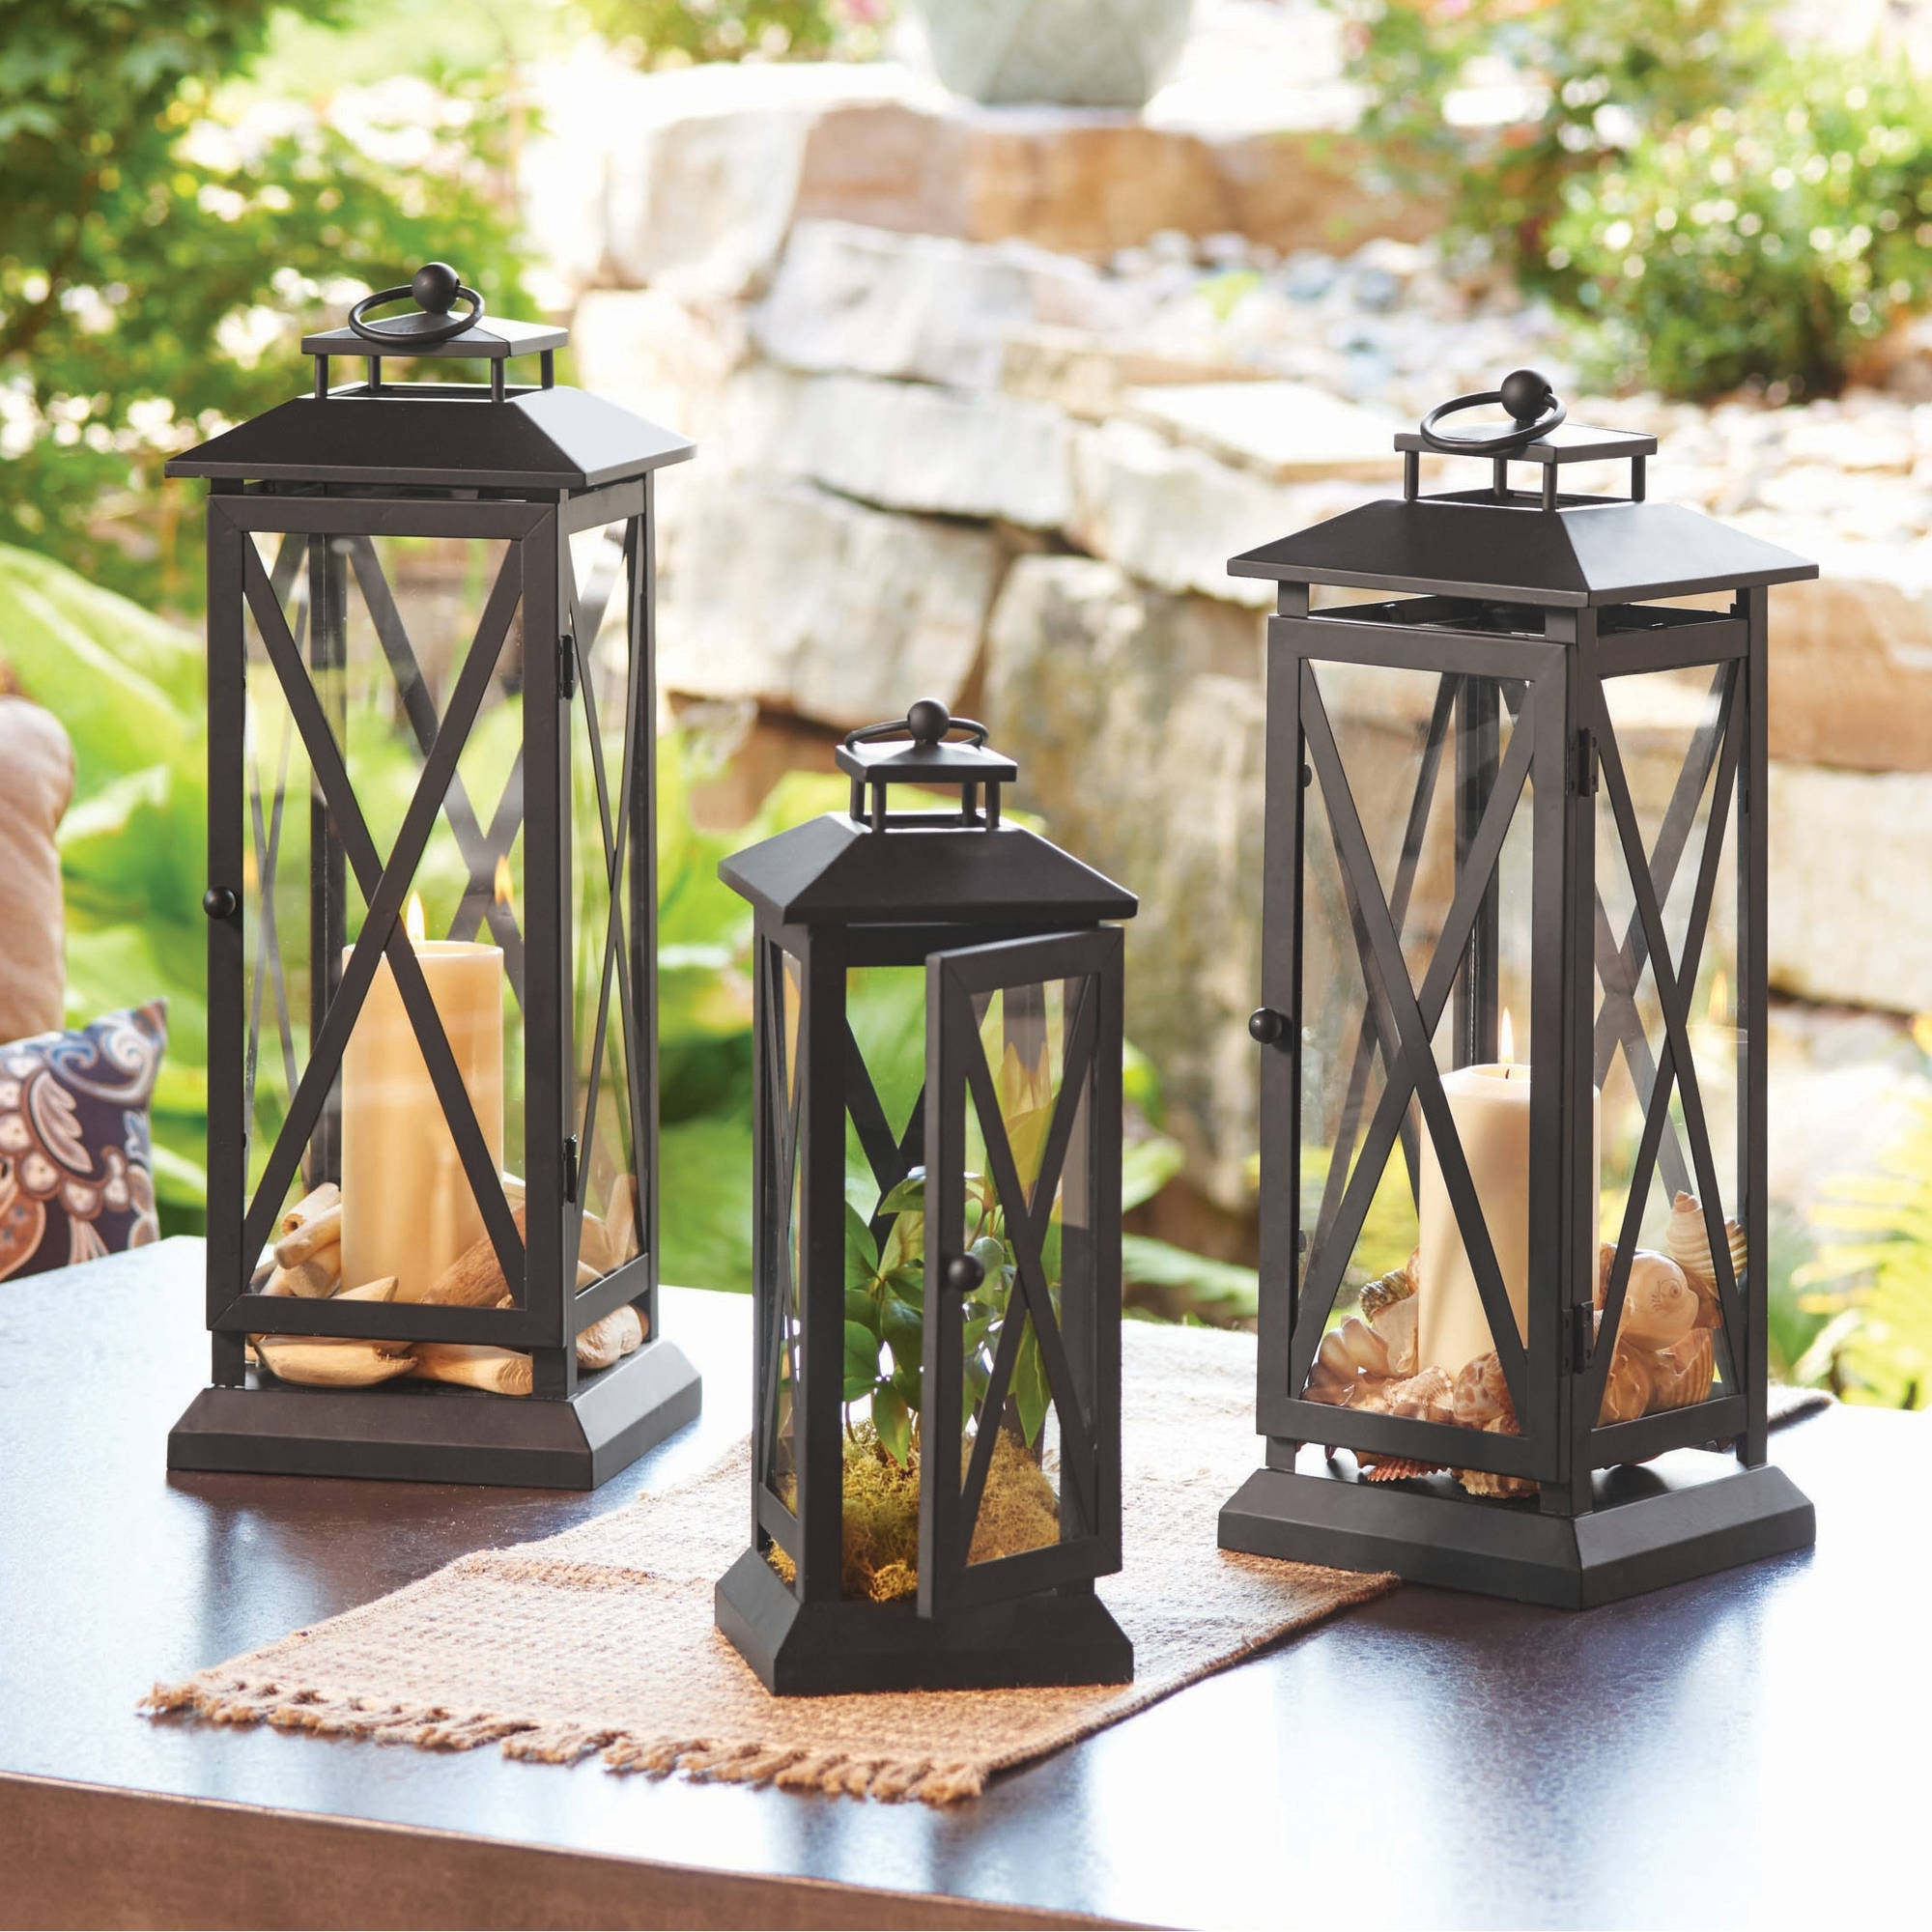 Fashionable Outdoor Vinyl Lanterns Within Better Homes And Gardens Crossbar Metal Outdoor Lantern – Walmart (View 7 of 20)